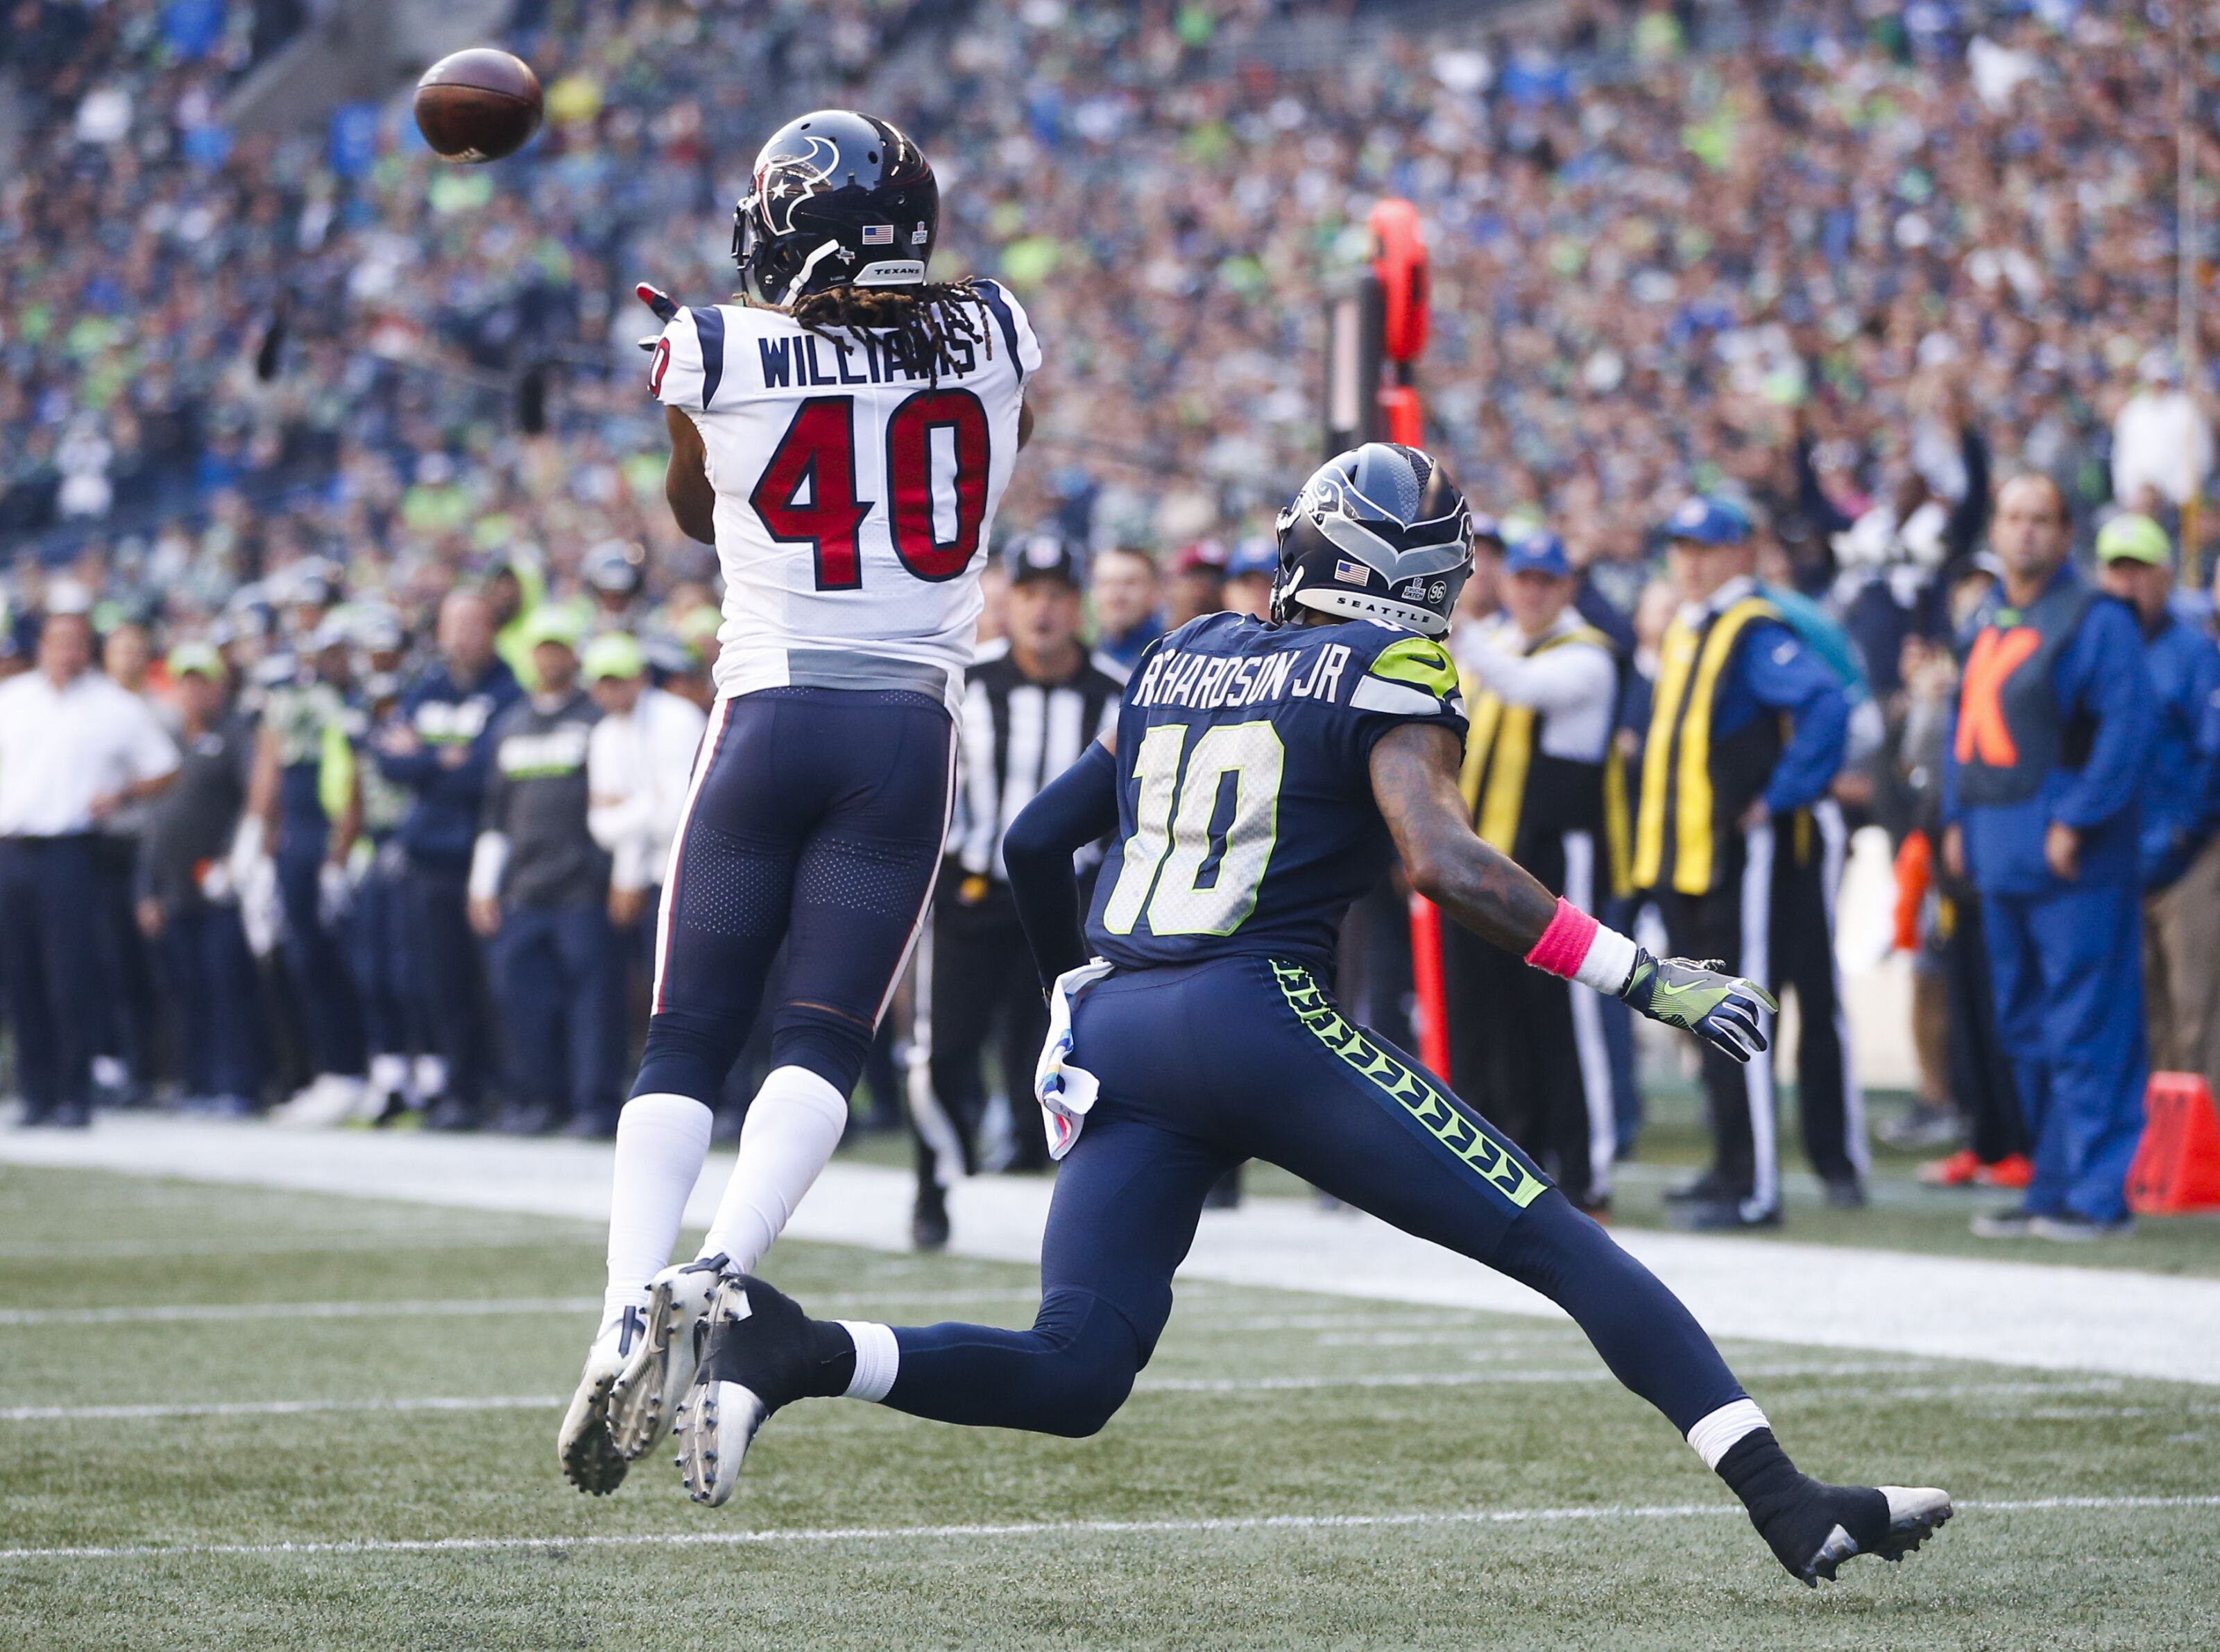 867949086-houston-texans-v-seattle-seahawks.jpg